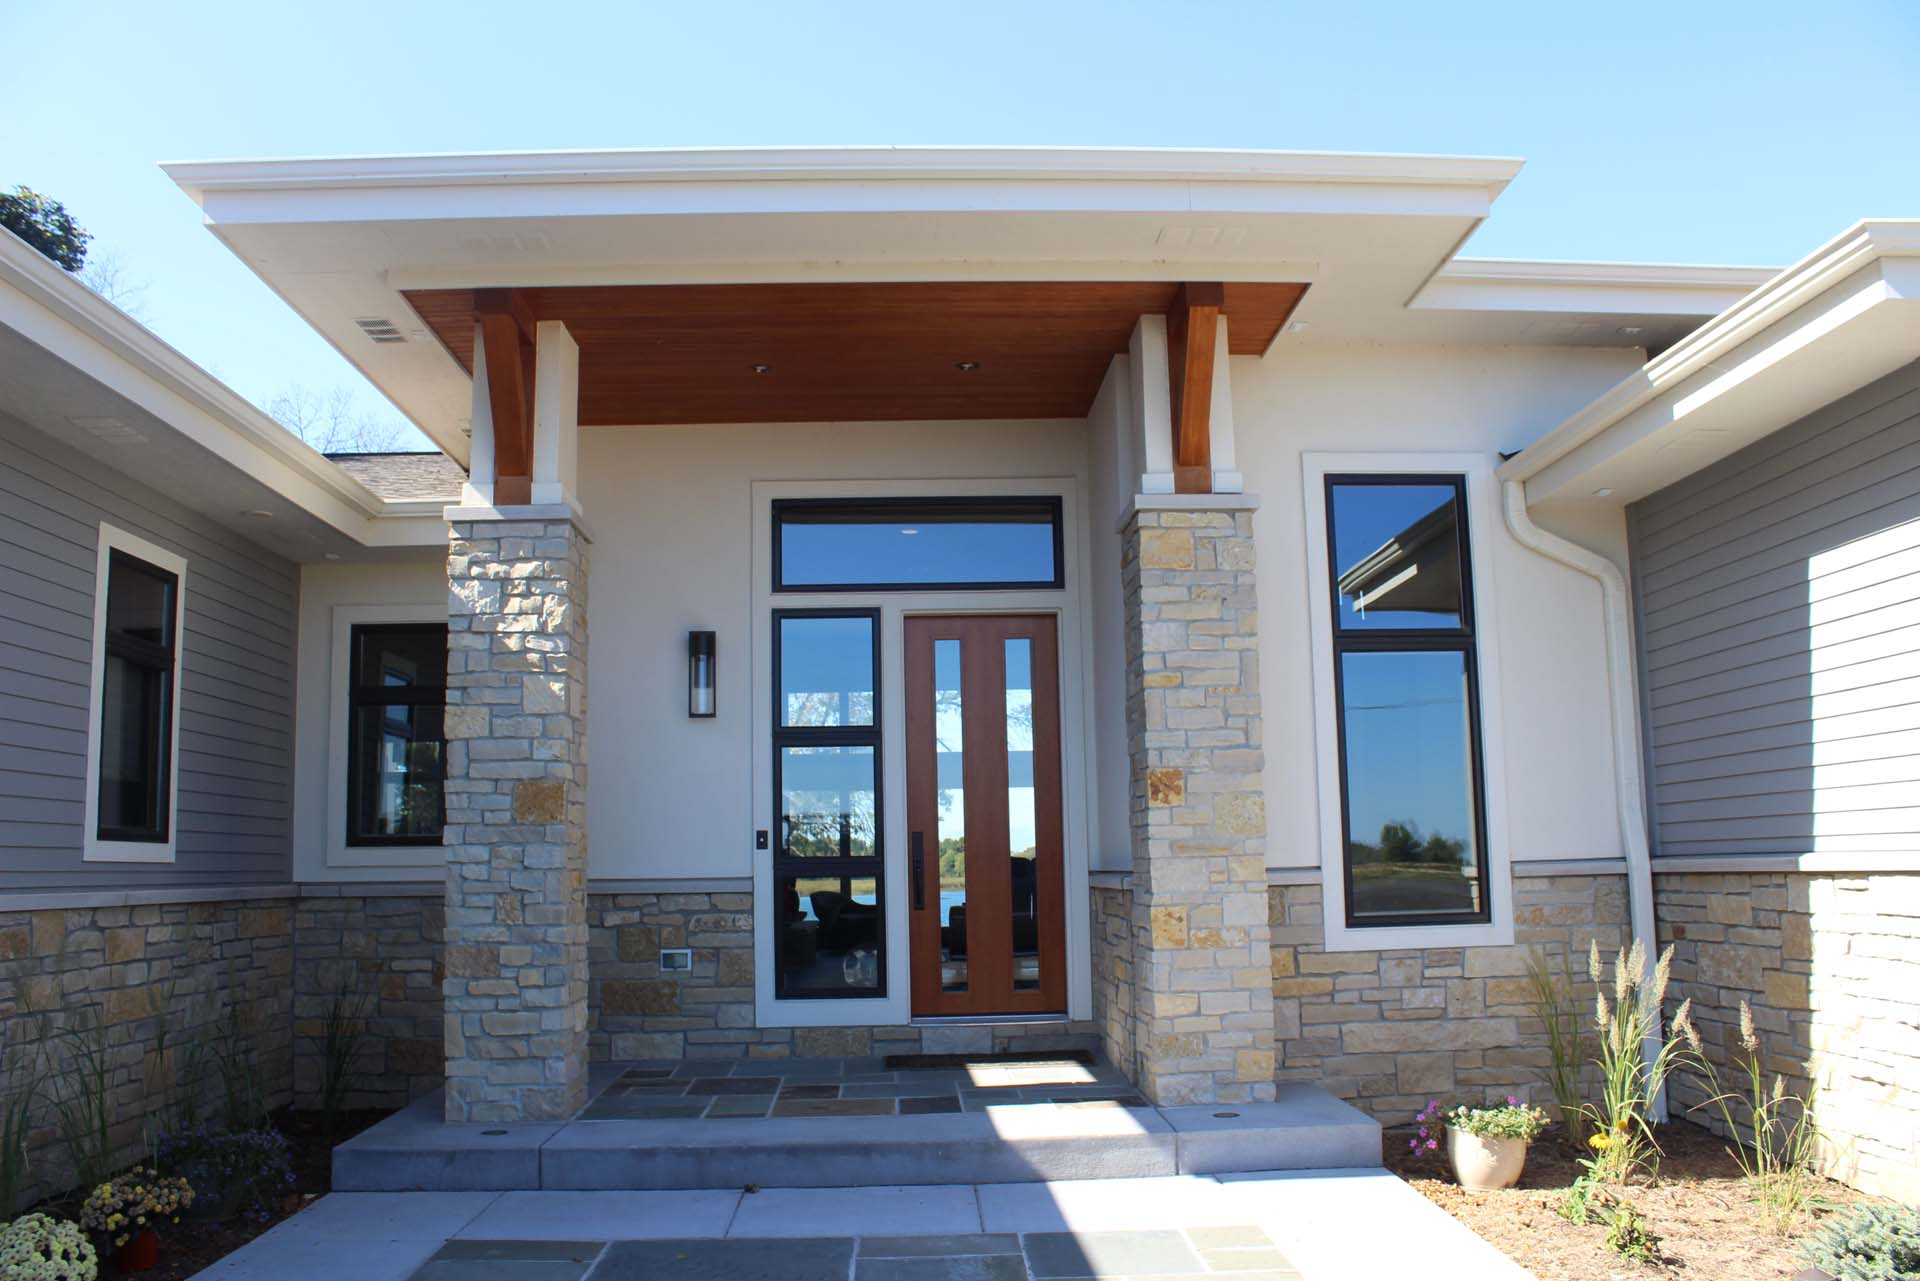 RMH_Golden_Lake_Contemporary_FrontDoor2.jpg